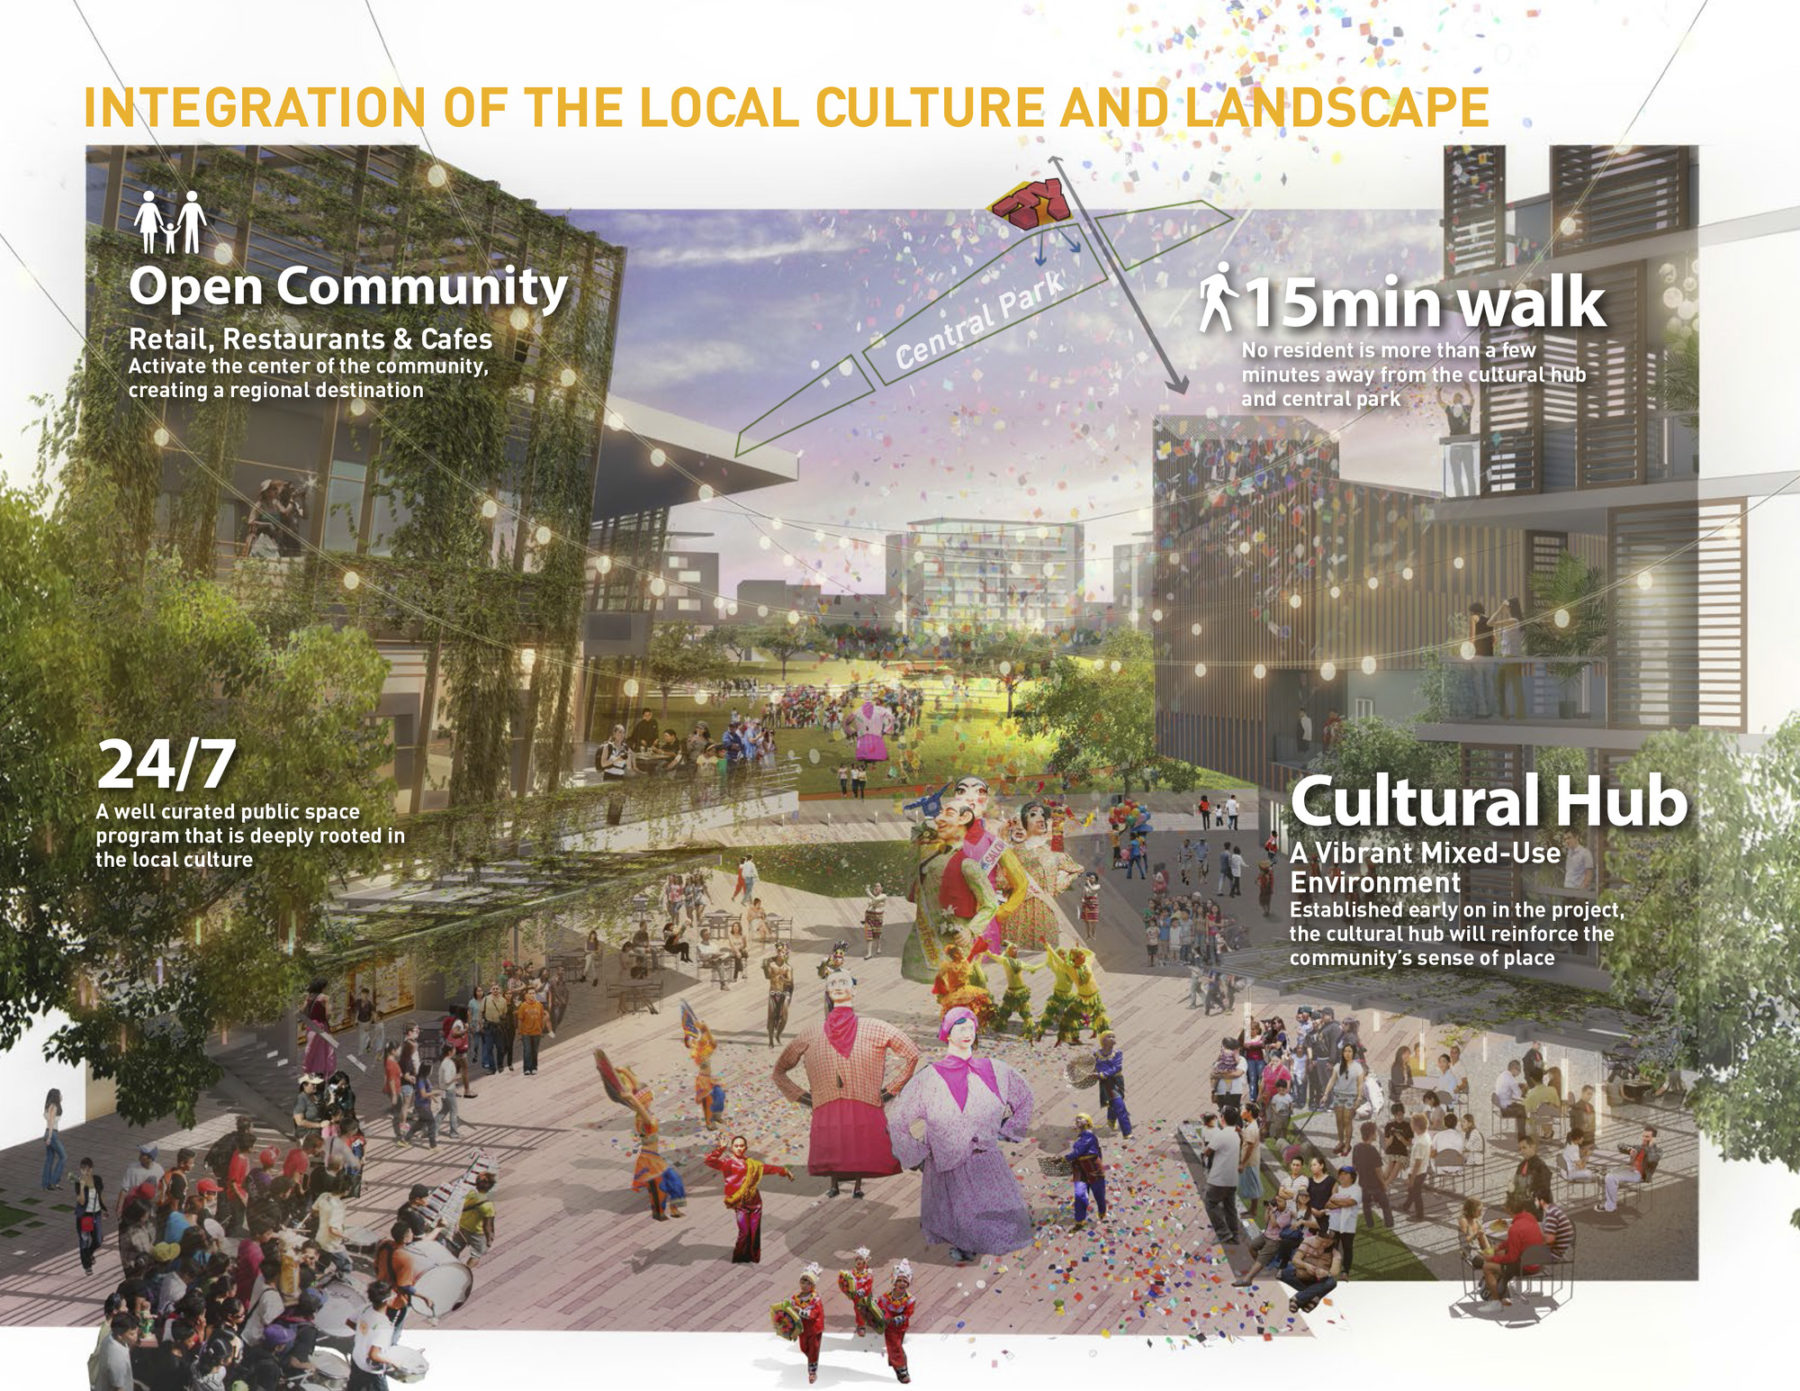 Rendering of the center square with cultural events